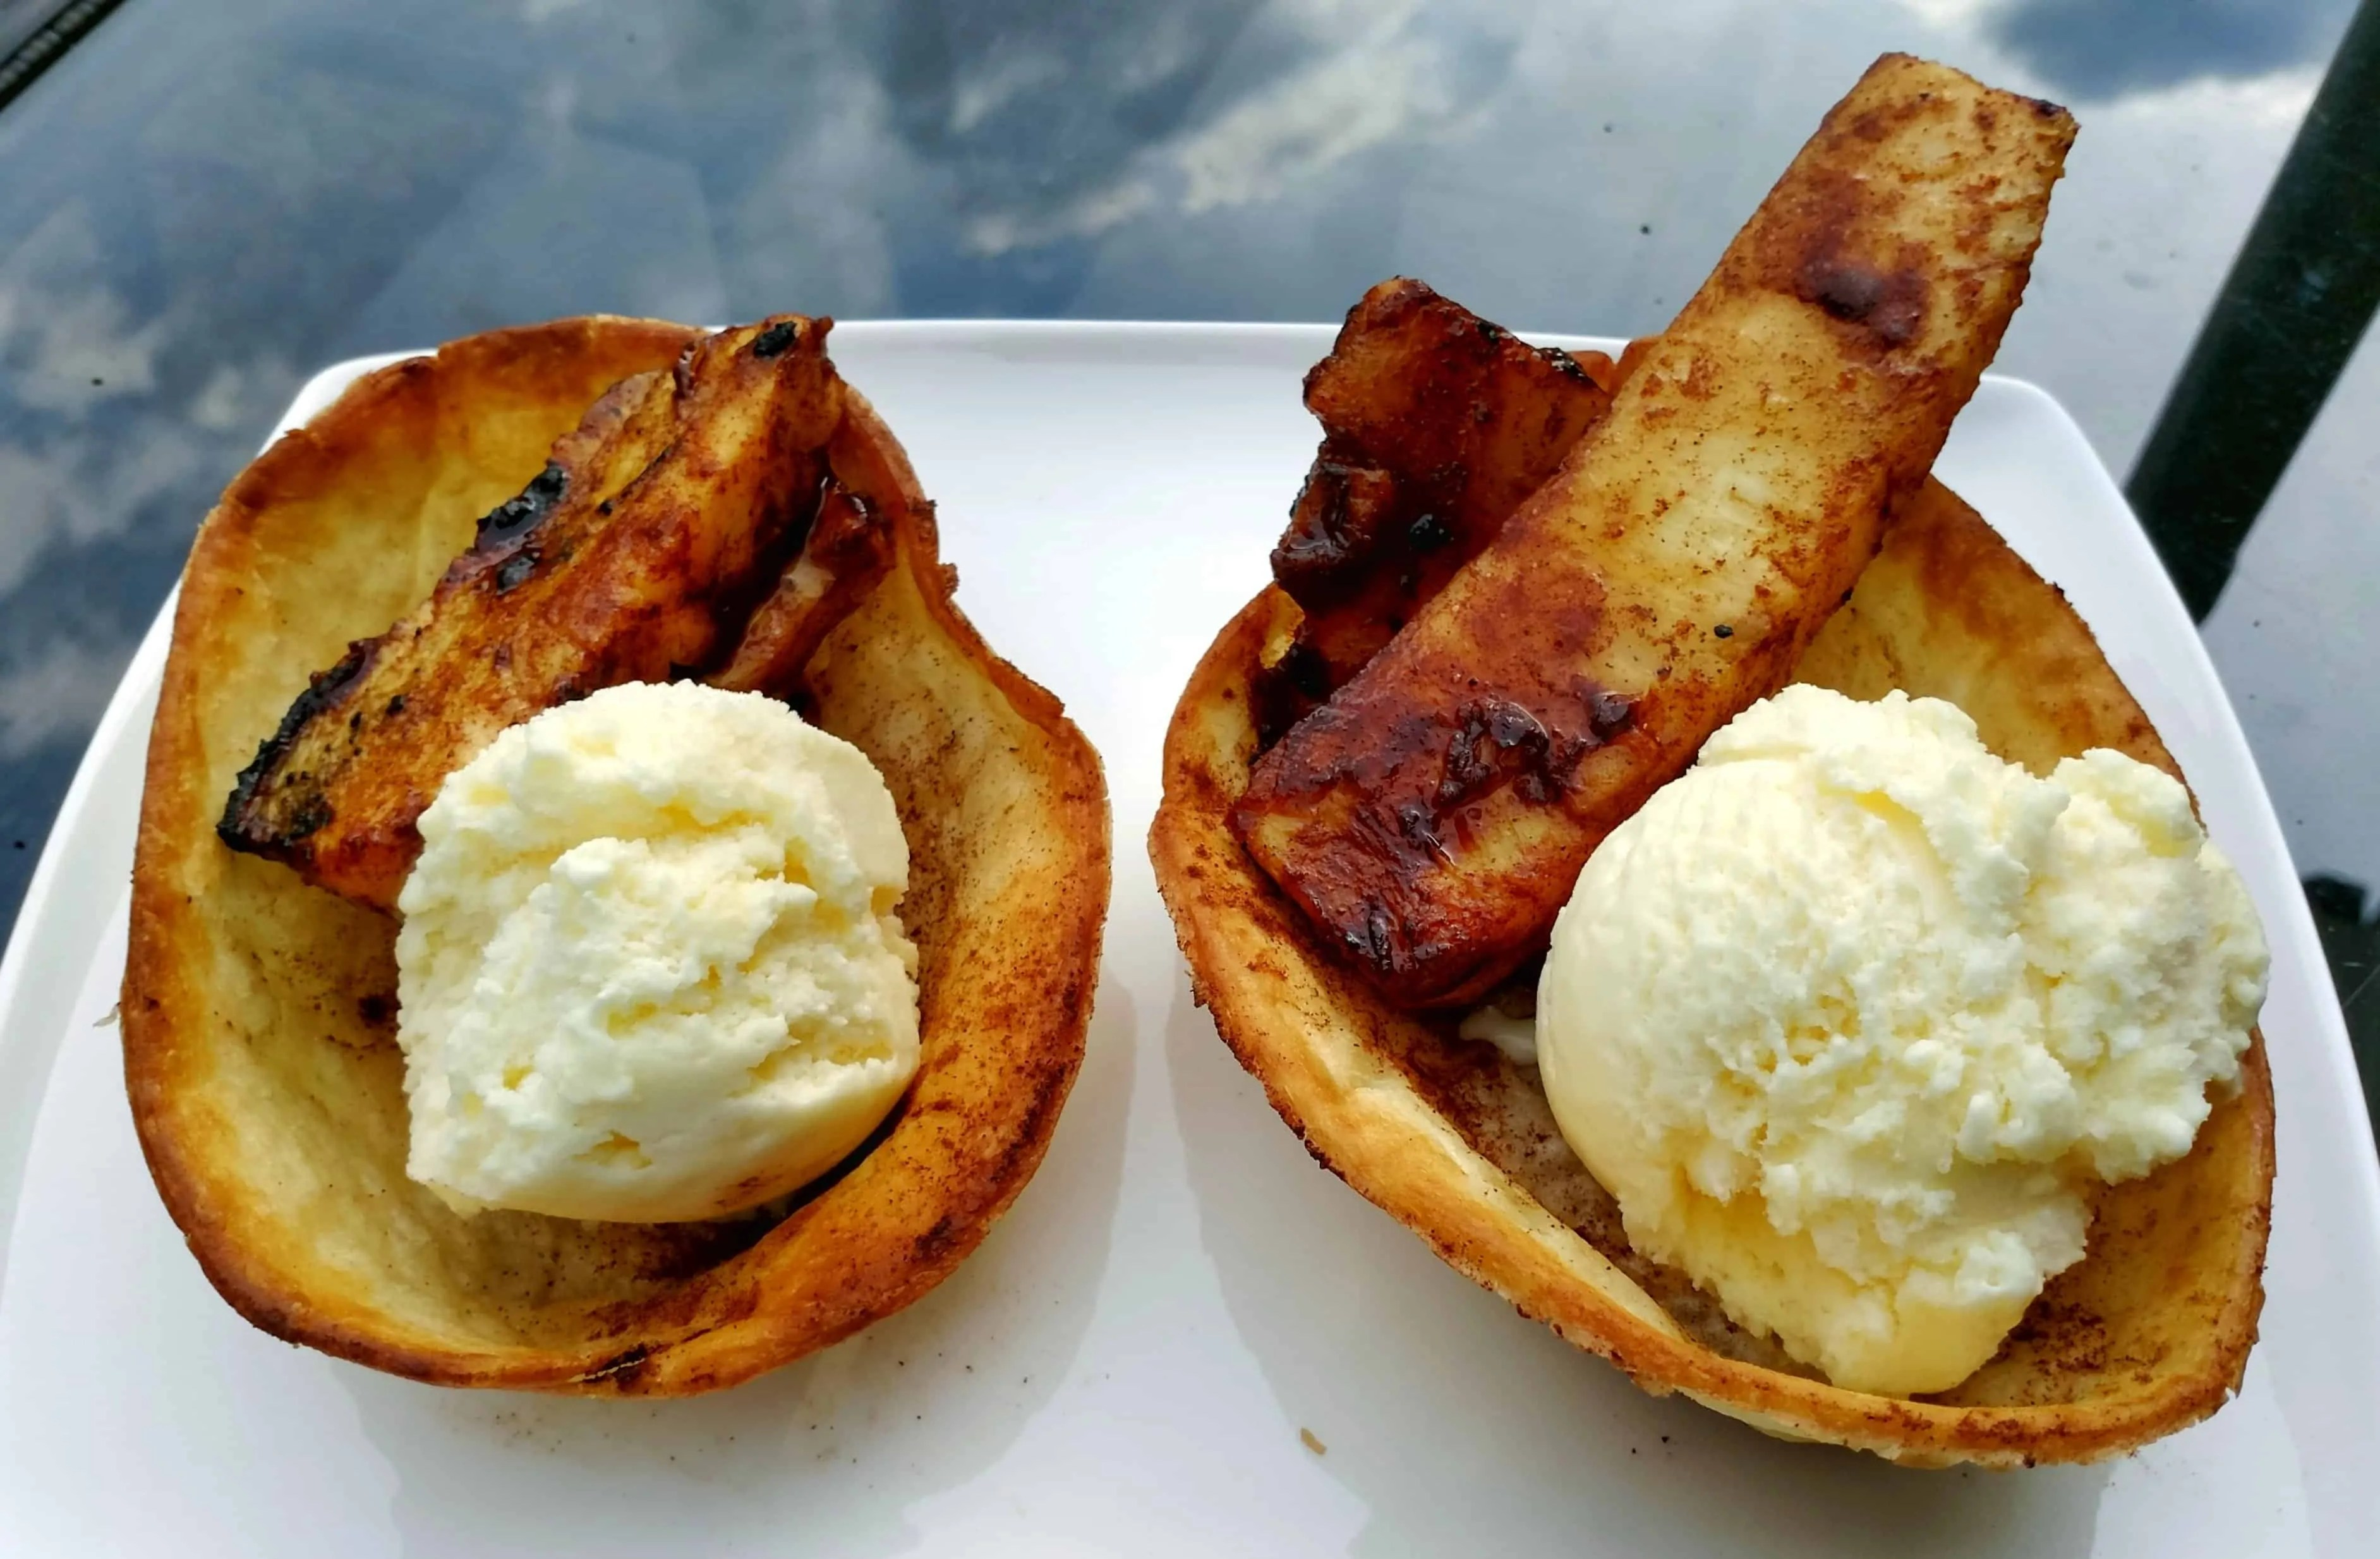 Old El Paso Let's Taco 'Bout It, Chapter Five — Of Sweet Treats, Toddlers and Tortilla Bowls. — Cinnamon Sugar Tortilla Bowls and Grilled Pineapple Sundaes